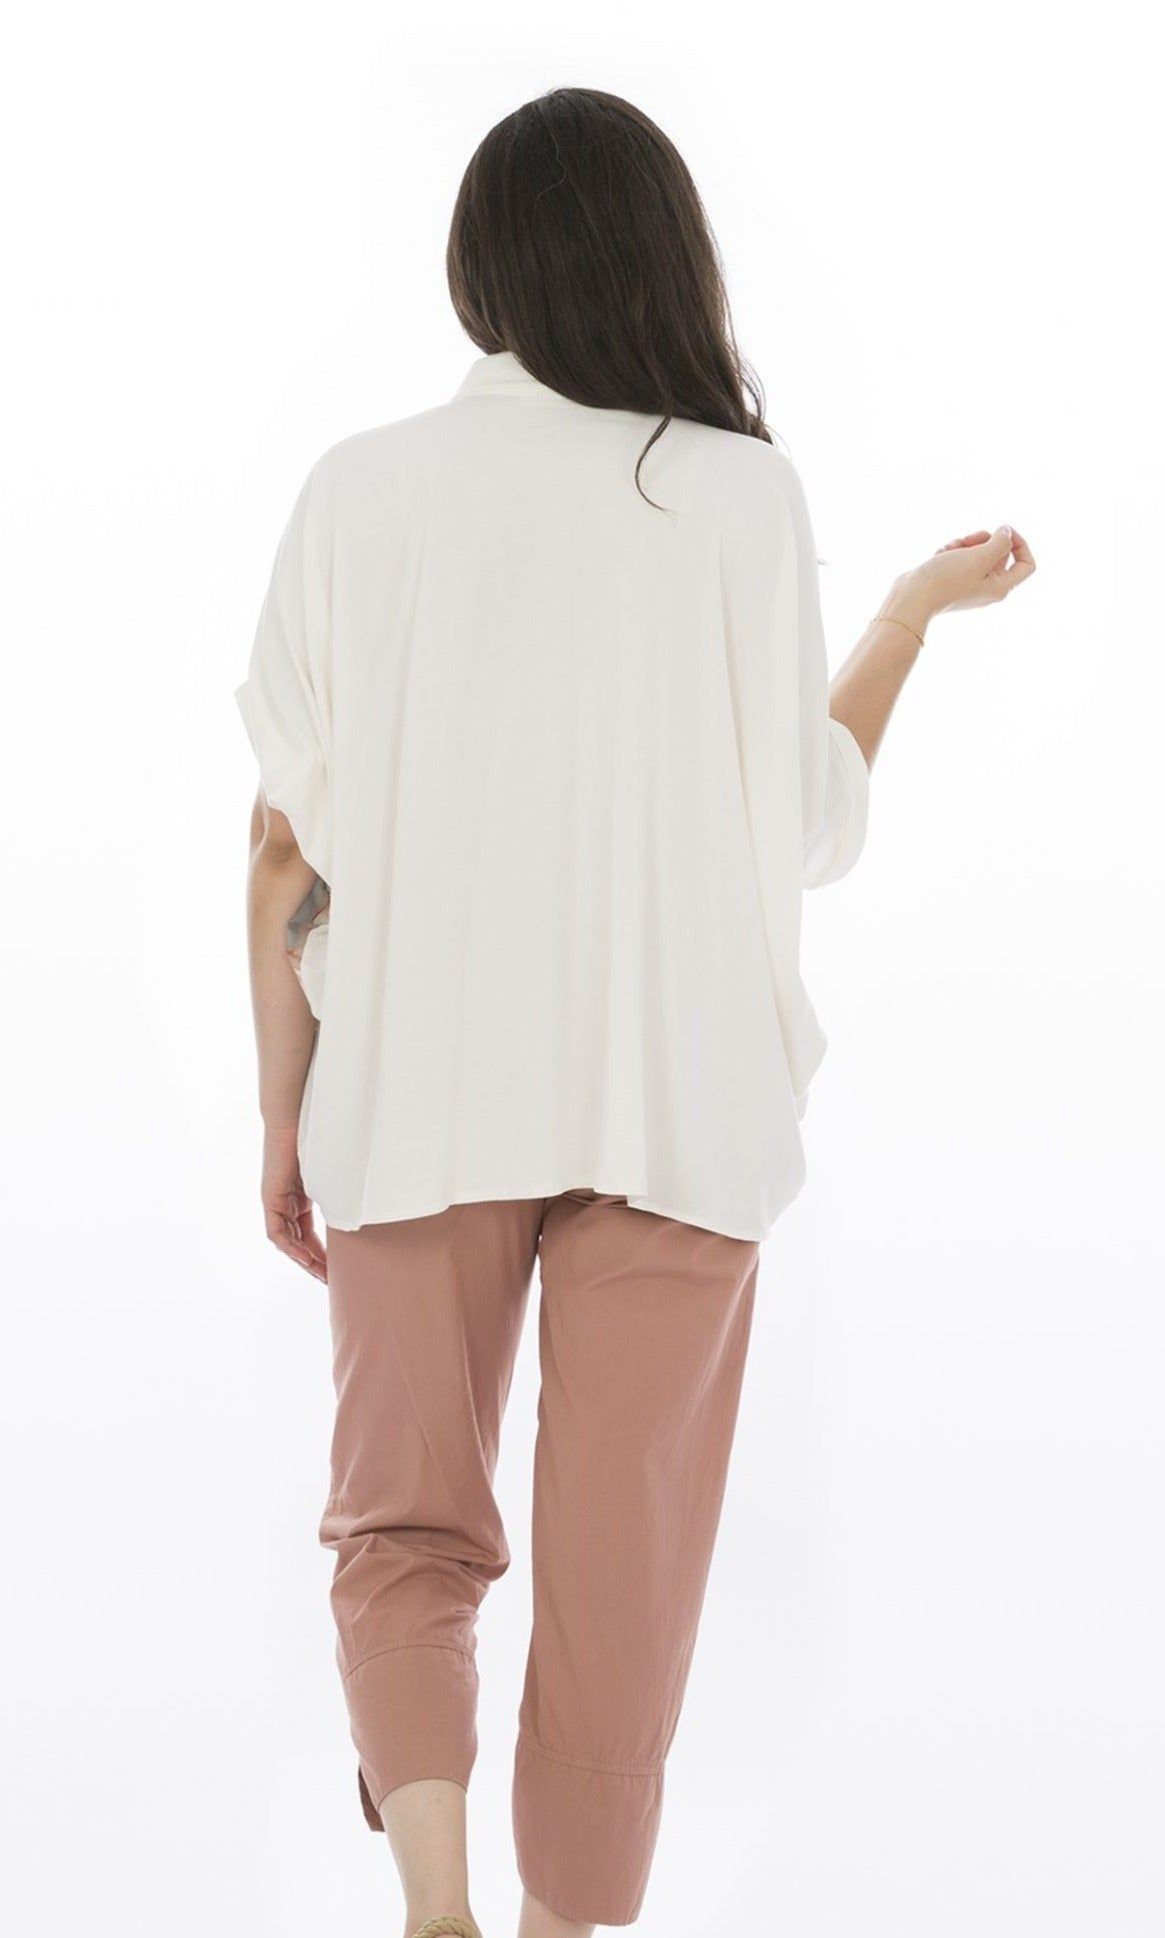 Back, top half view of a woman wearing pink capris and the Luukaa Watercolor Shirt. The back of this shirt is completely white and oversized. The sleeves are short and dolman-like.